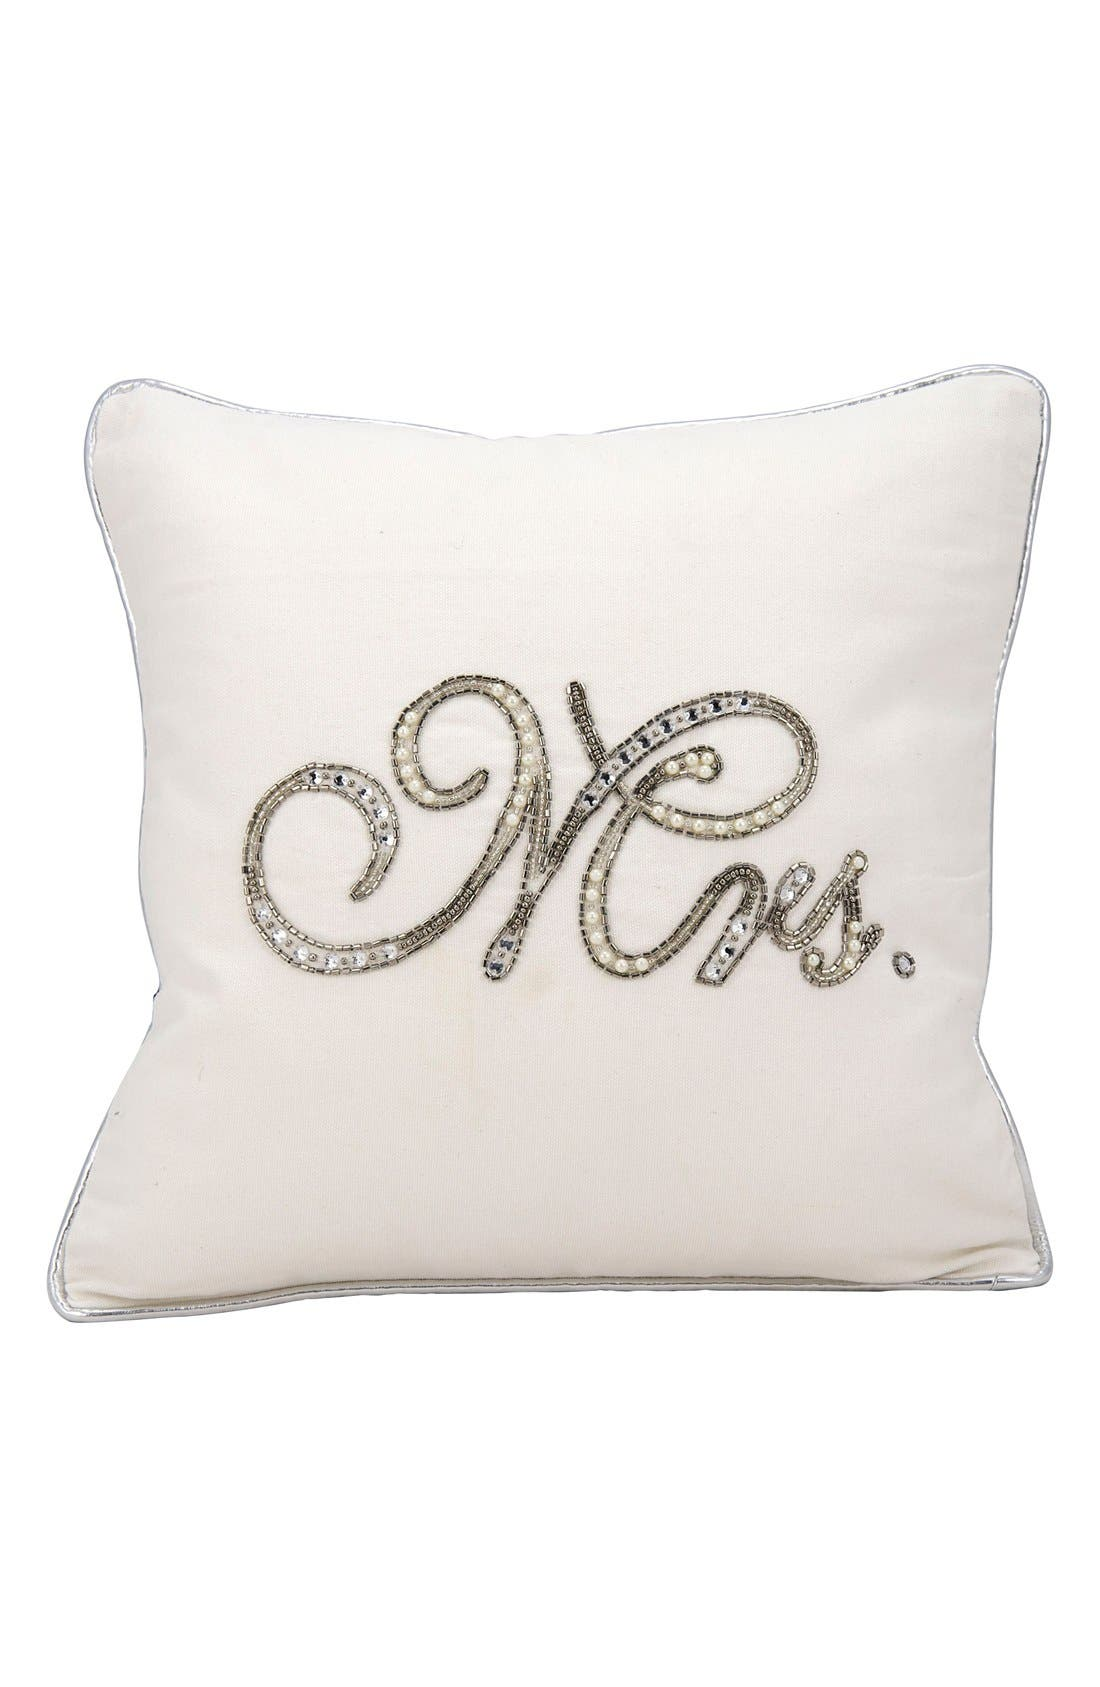 Embellished Wedding Pillow,                             Main thumbnail 1, color,                             Mrs